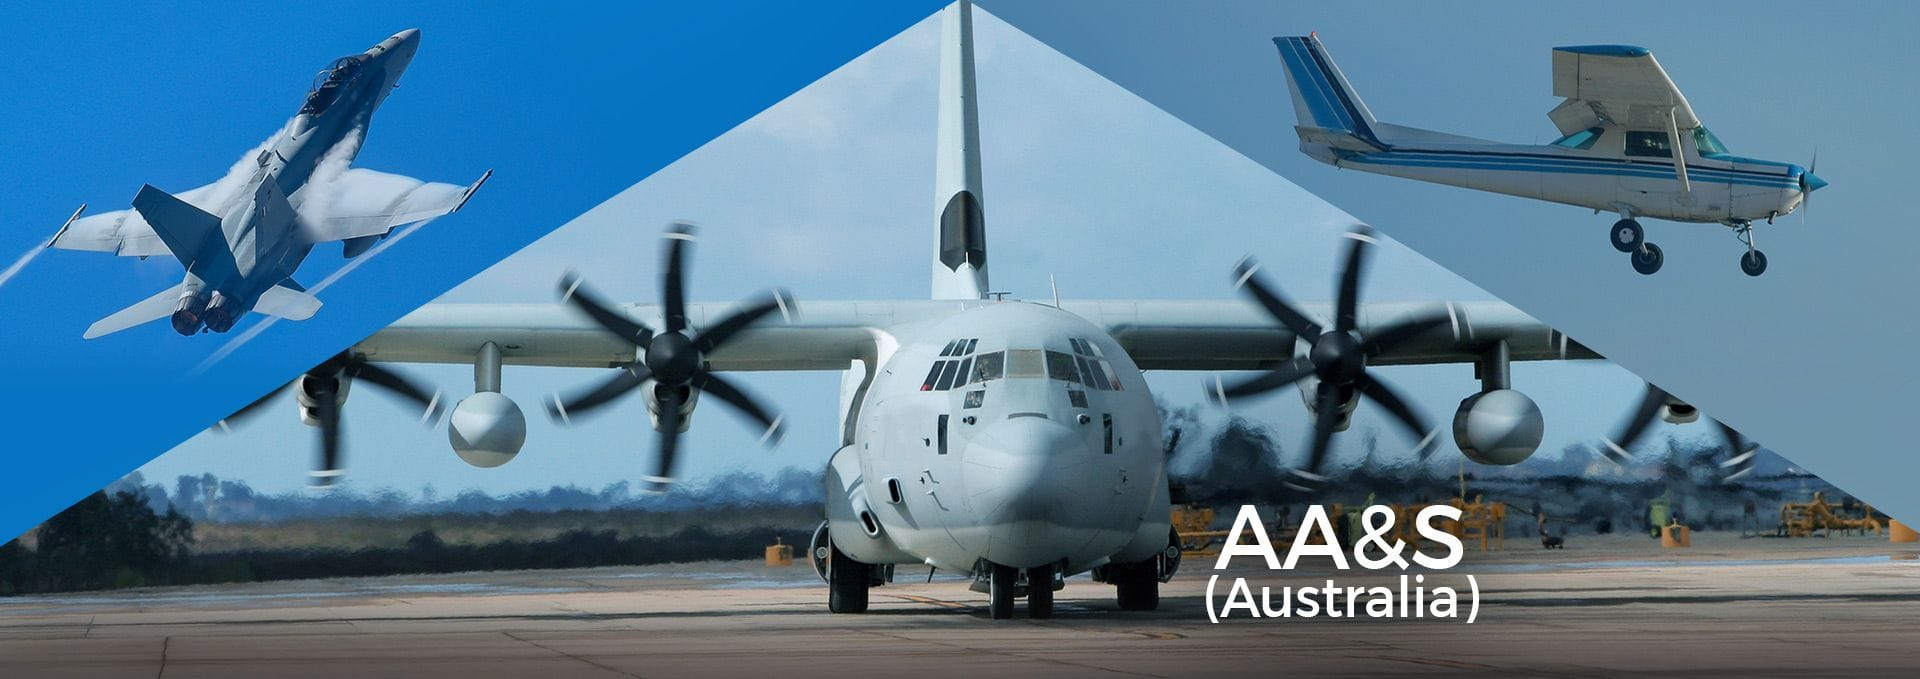 Aircraft Airworthiness & Sustainment Conference Australia